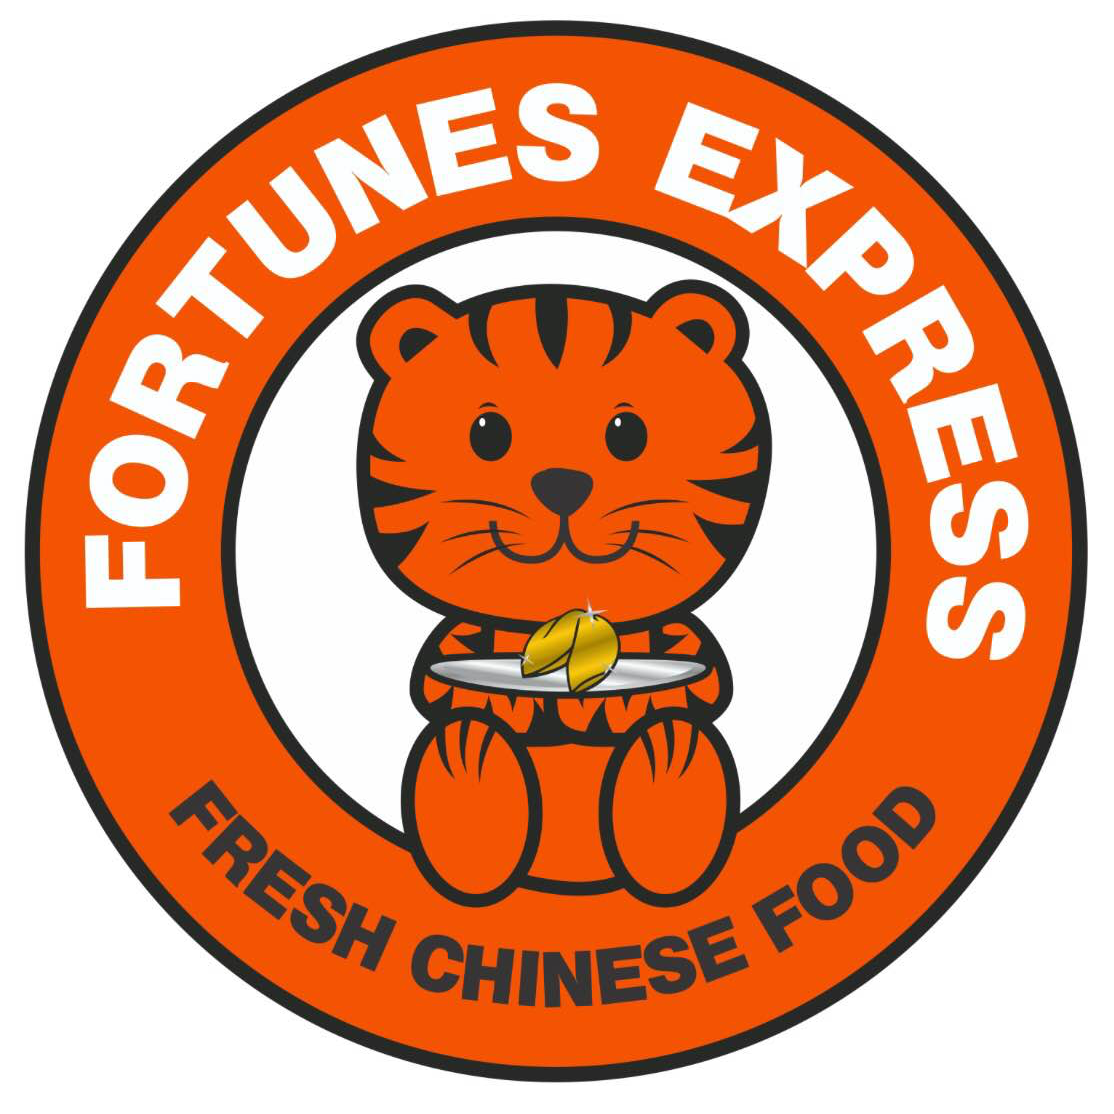 Fortune's Express